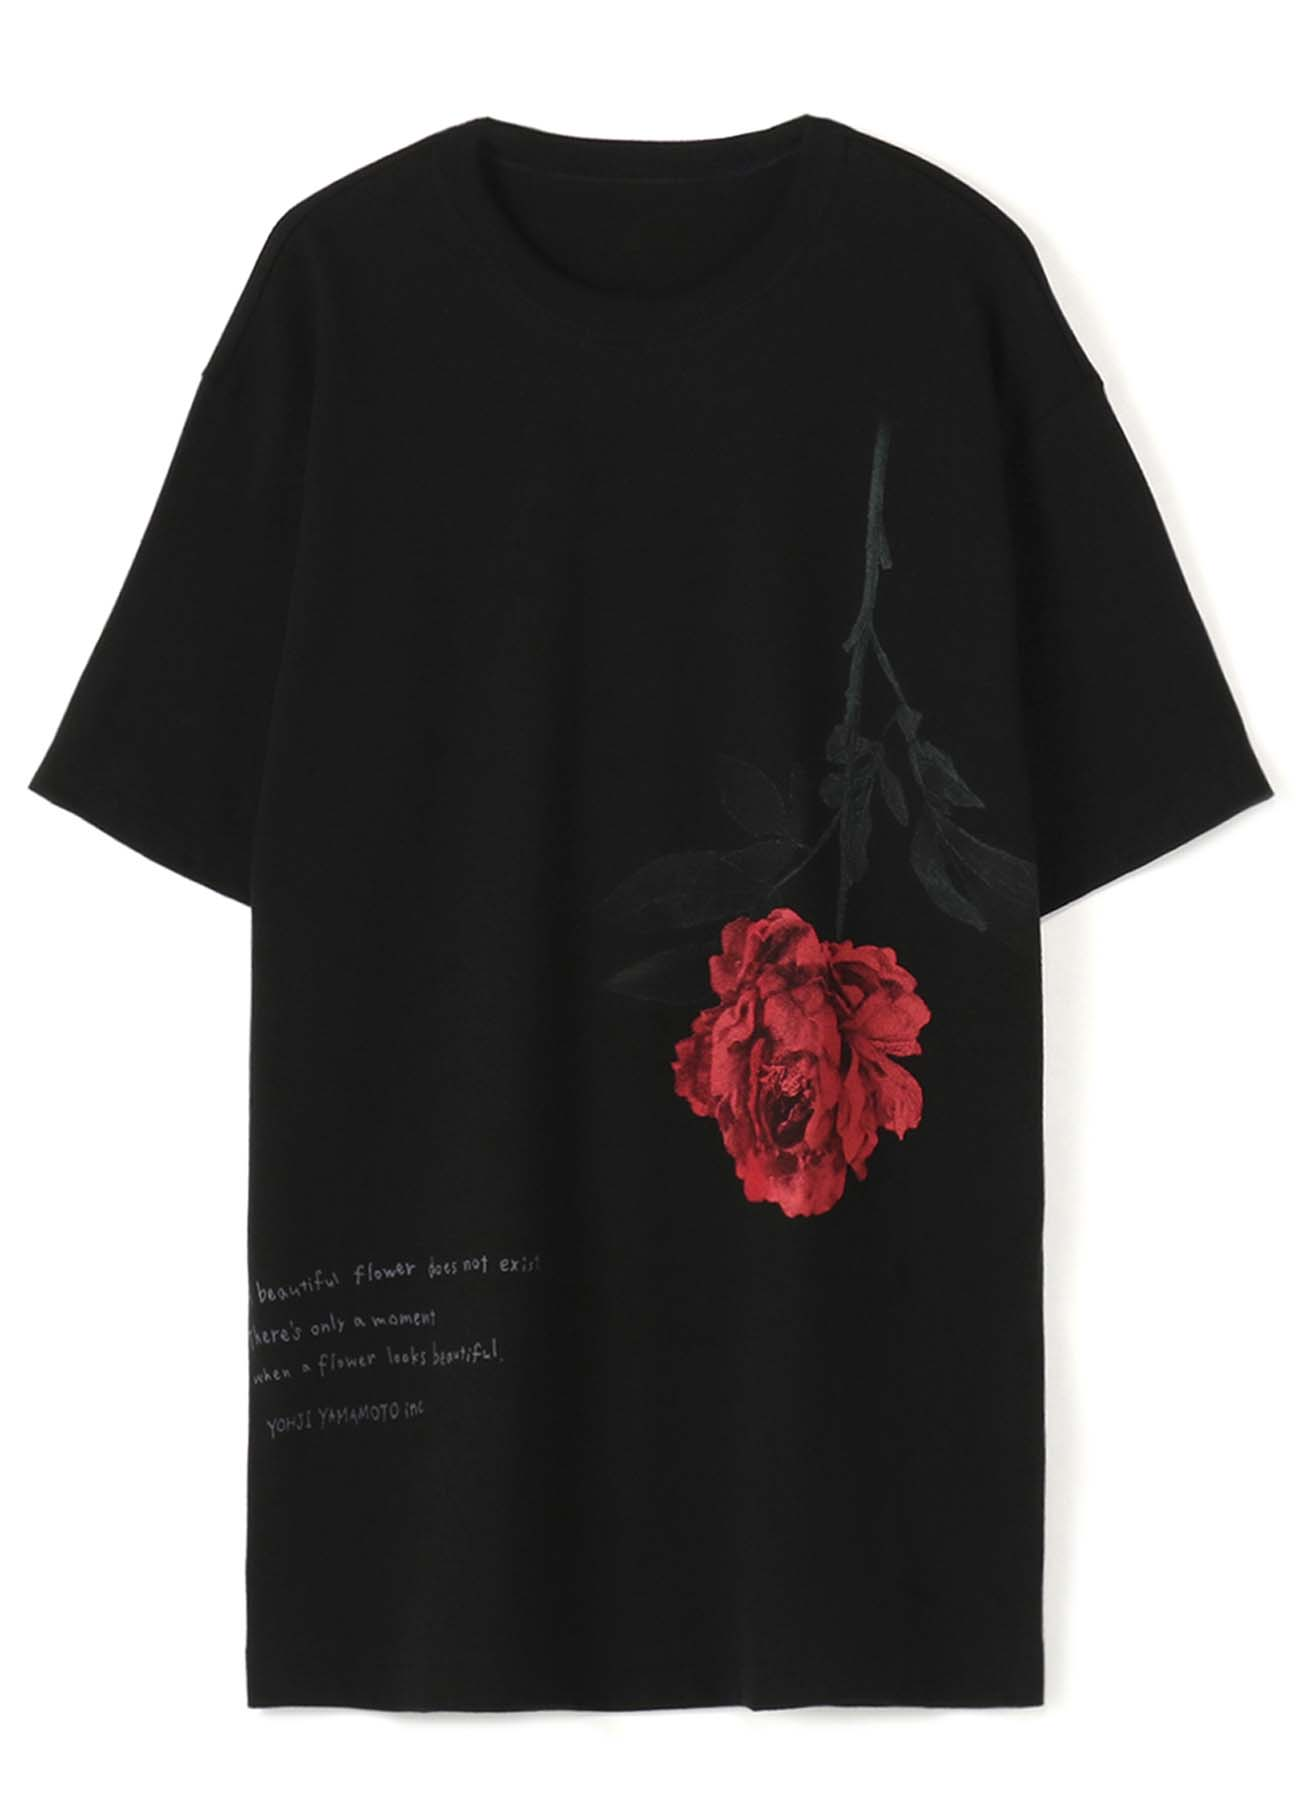 20/CottonJersey Moment When a Flower Looks Beautiful T-Shirt